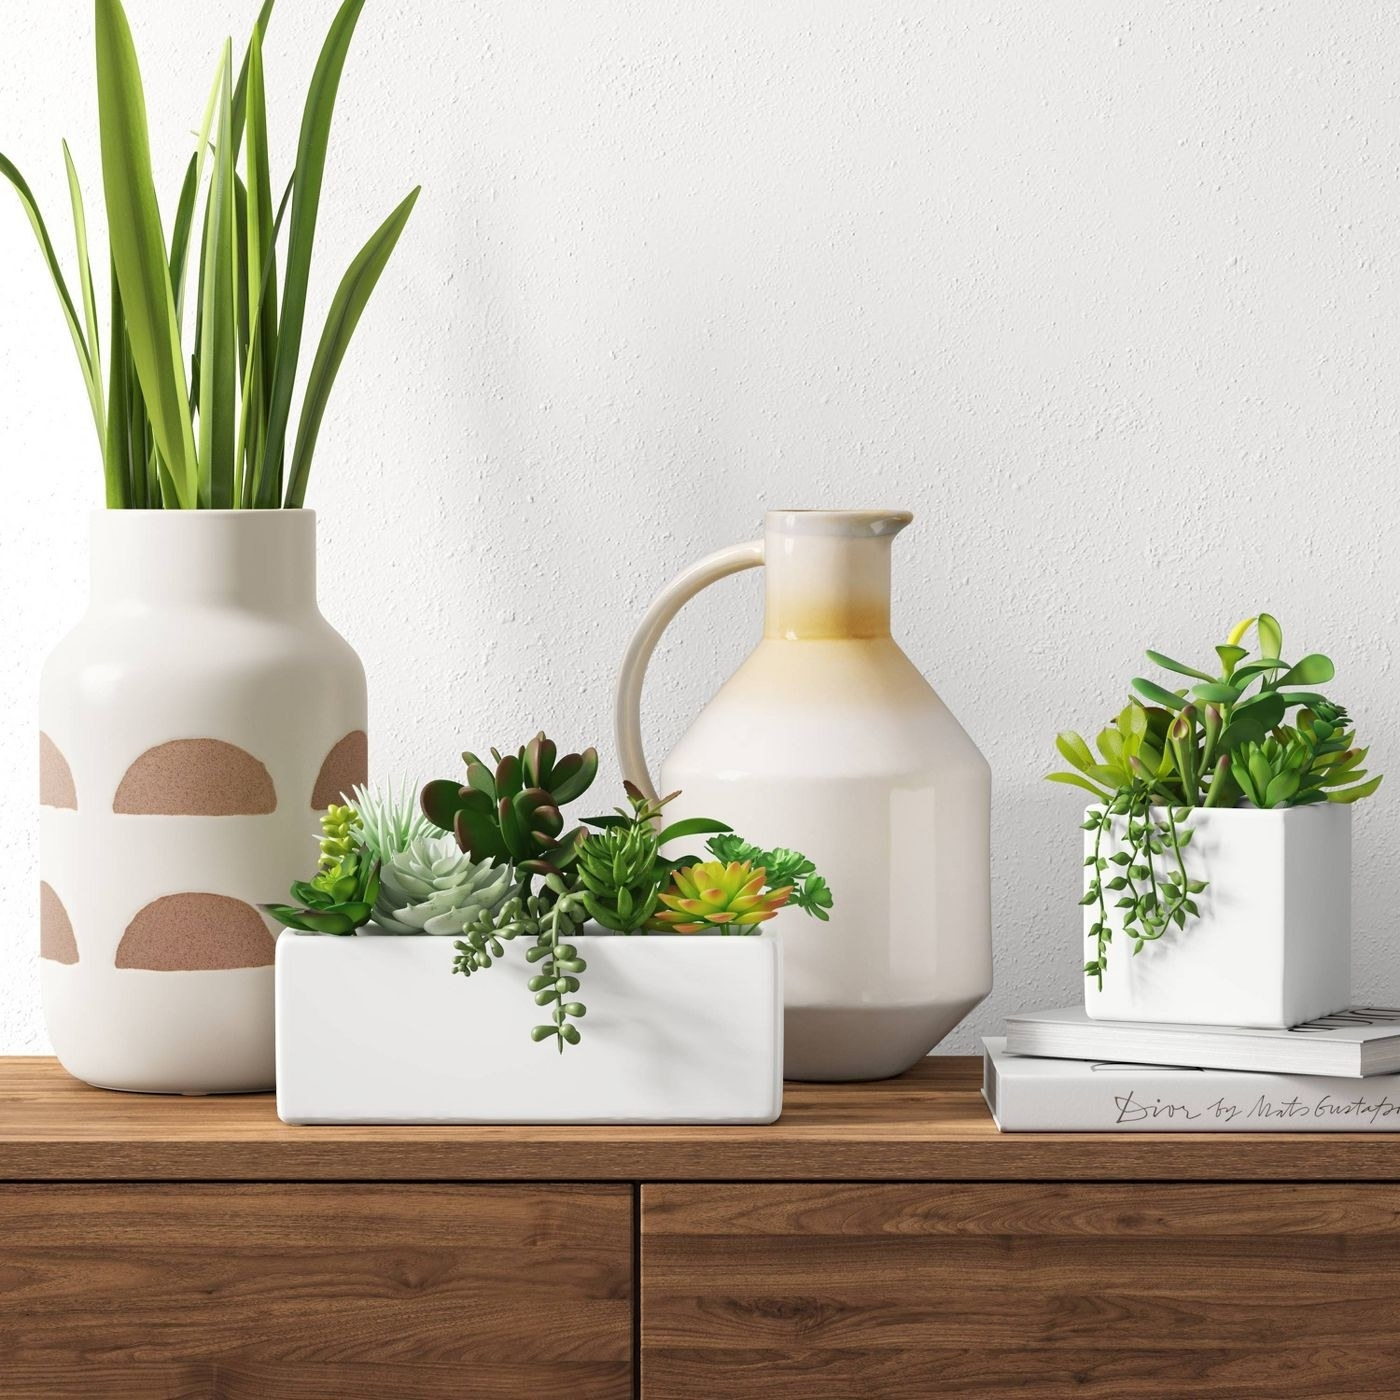 Theartificial succulent plant in a pot